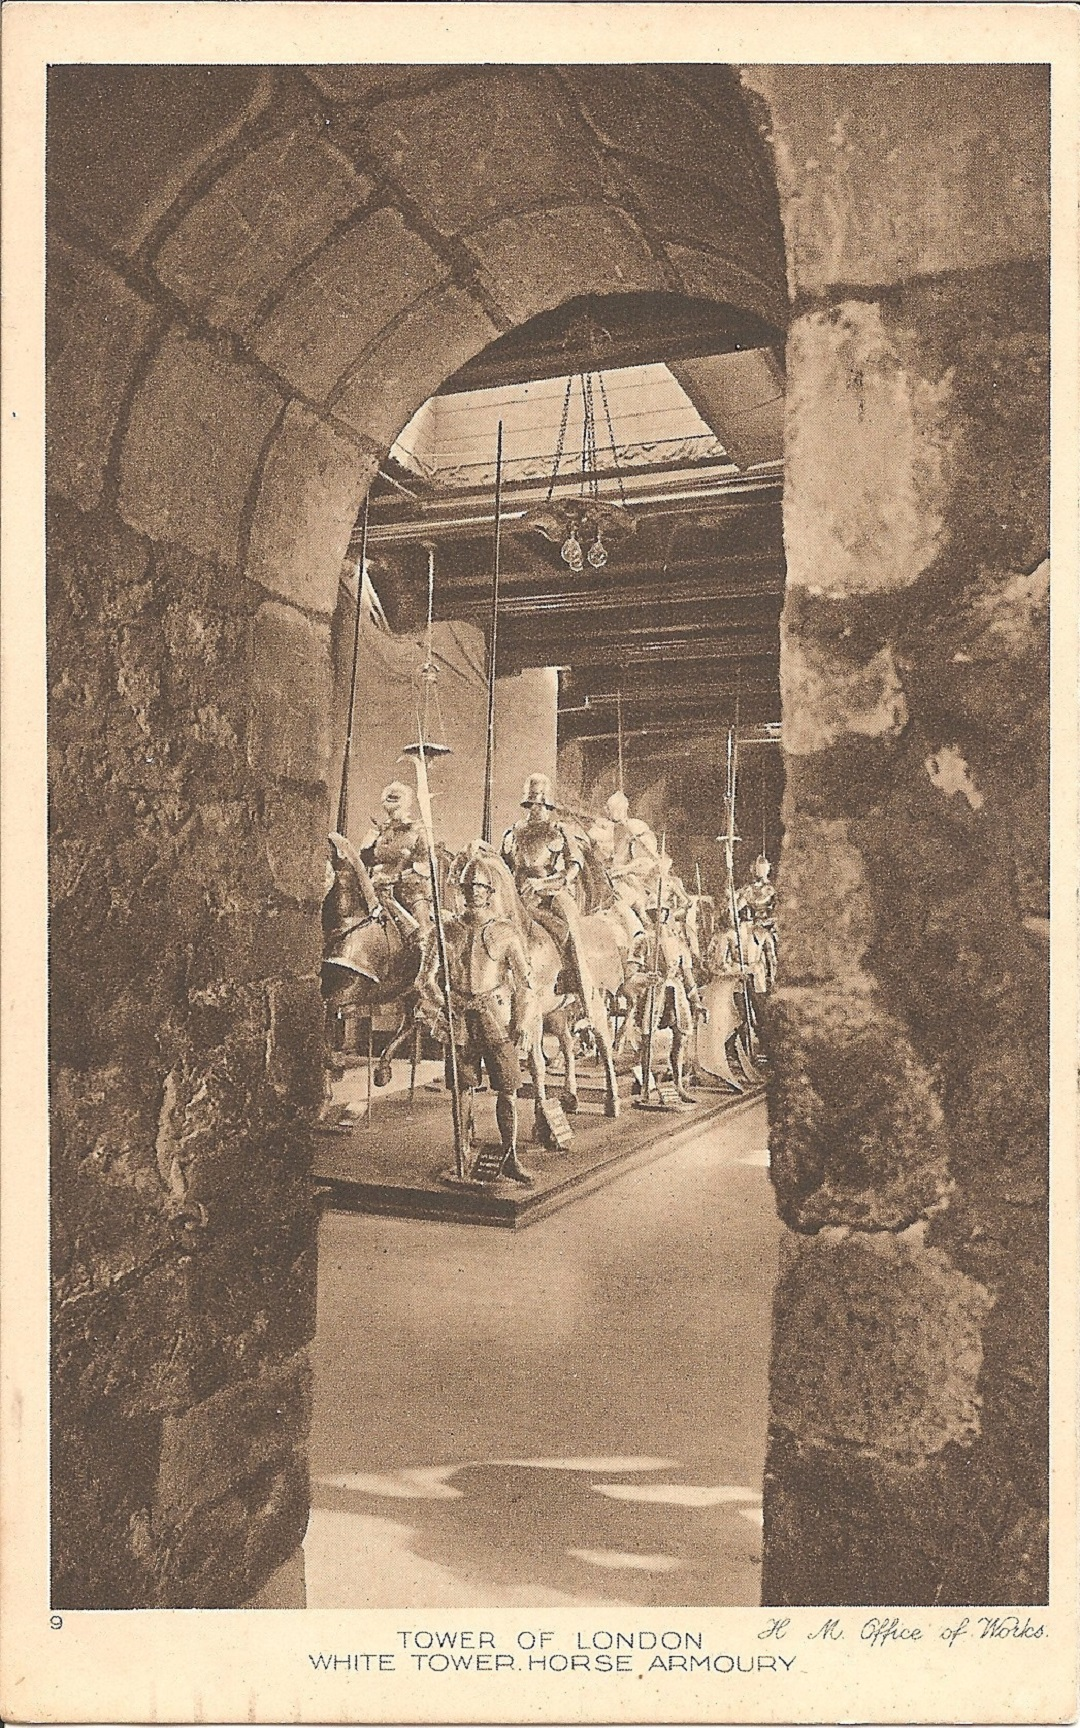 A sphotograph through a stone arch showing a dispaly of armour in sepia on a postcard.